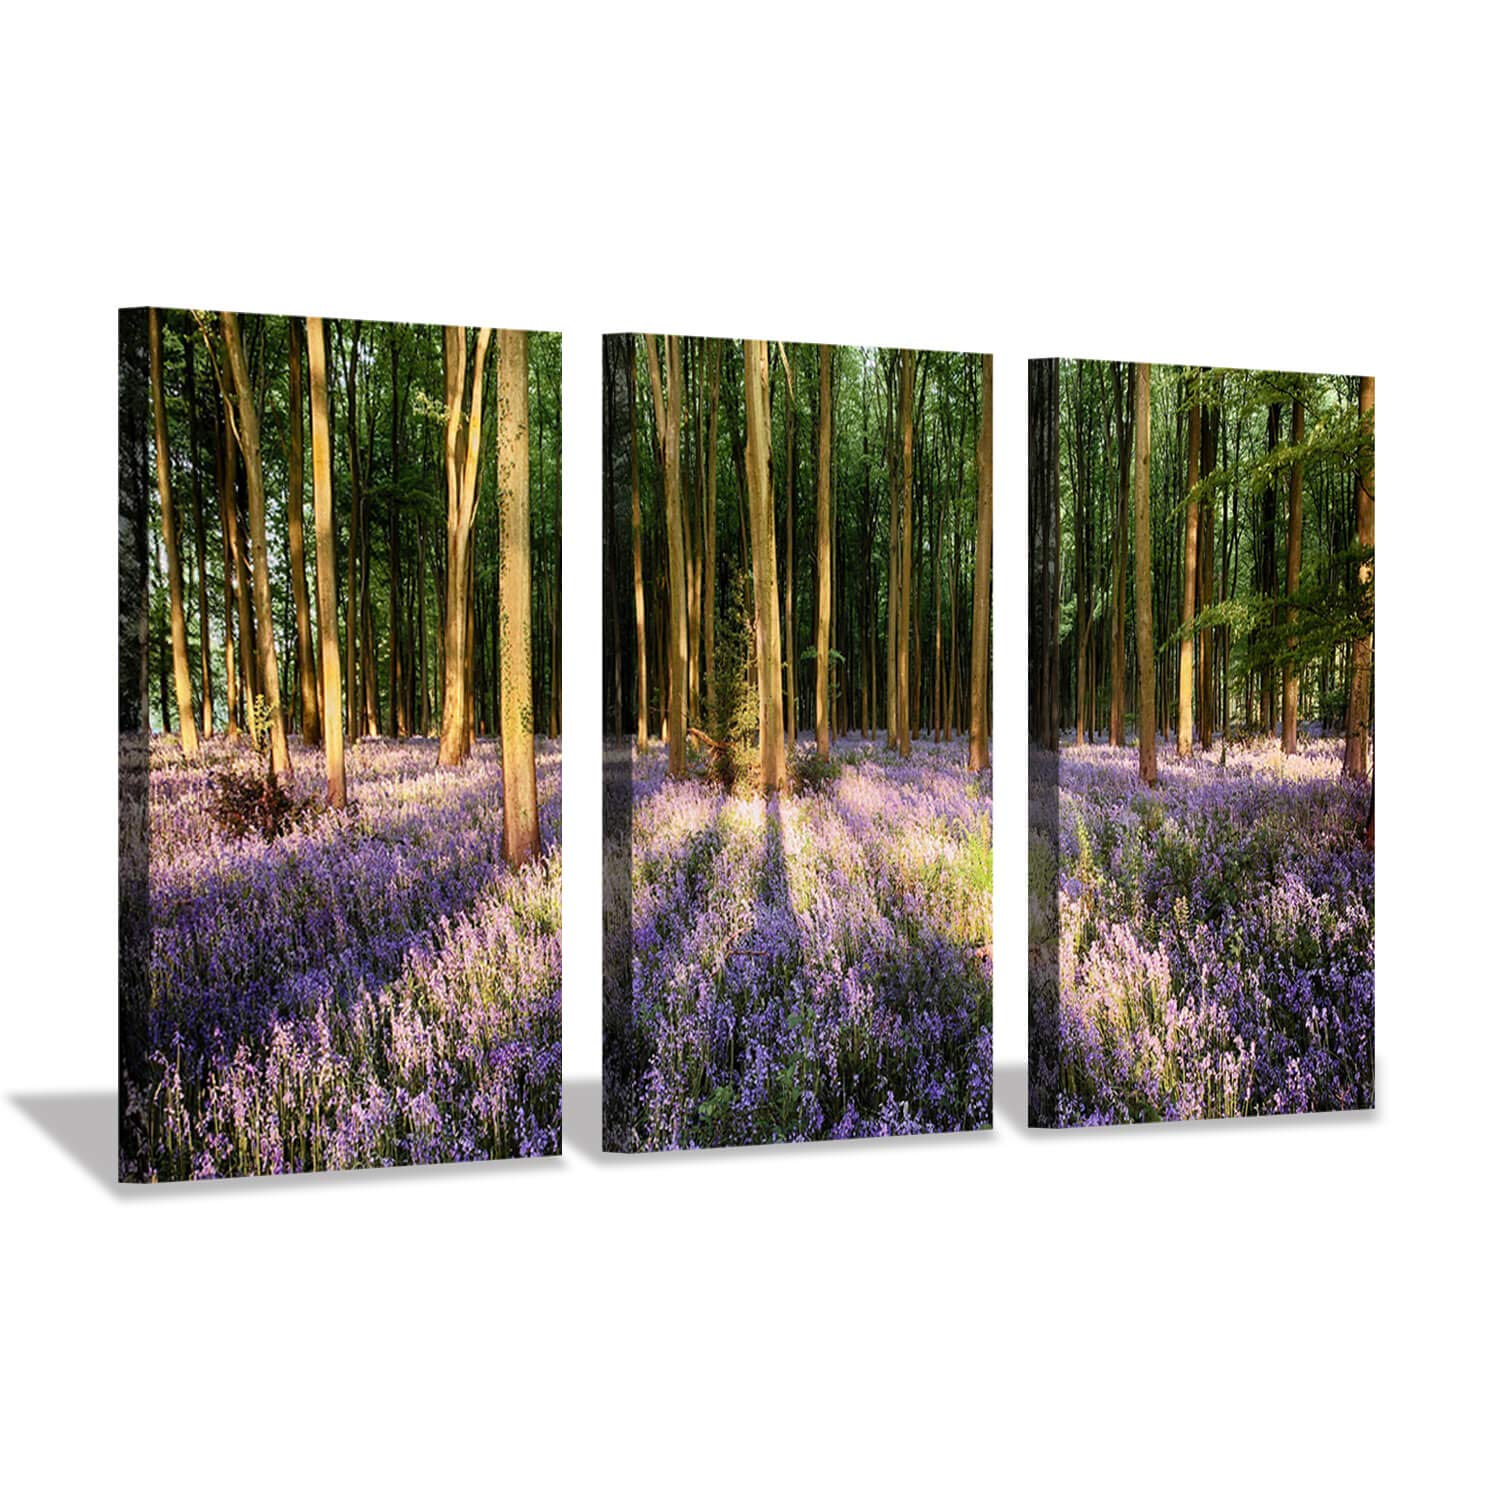 Hardy Gallery Natural Landscape Wall Art Painting Foggy Misty Forest Artwork Print On Canvas